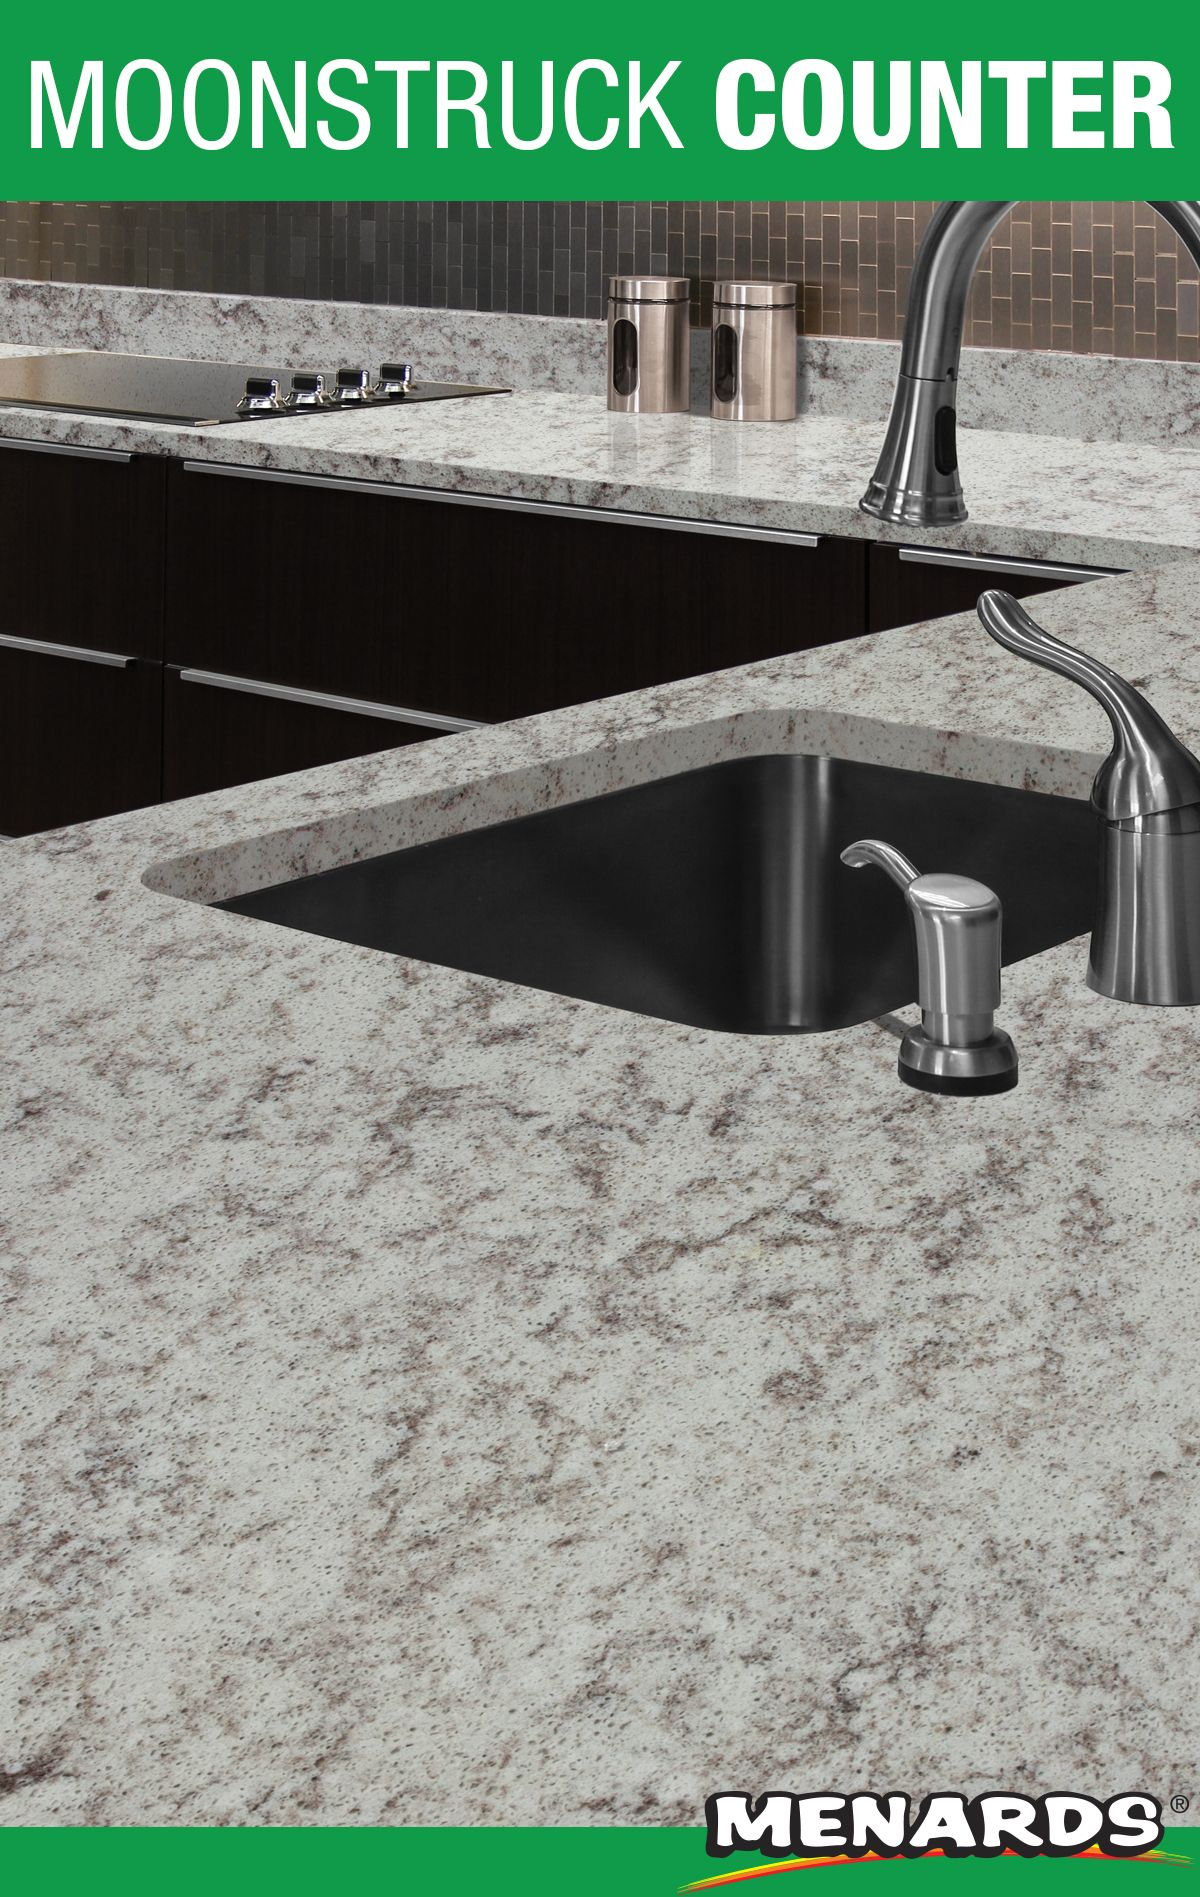 This Moonstruck Countertop Will Transform Your Kitchen From Ordinary To Luxurious It Pairs Well With Black Ca Laminate Countertops Menards Kitchen Countertops